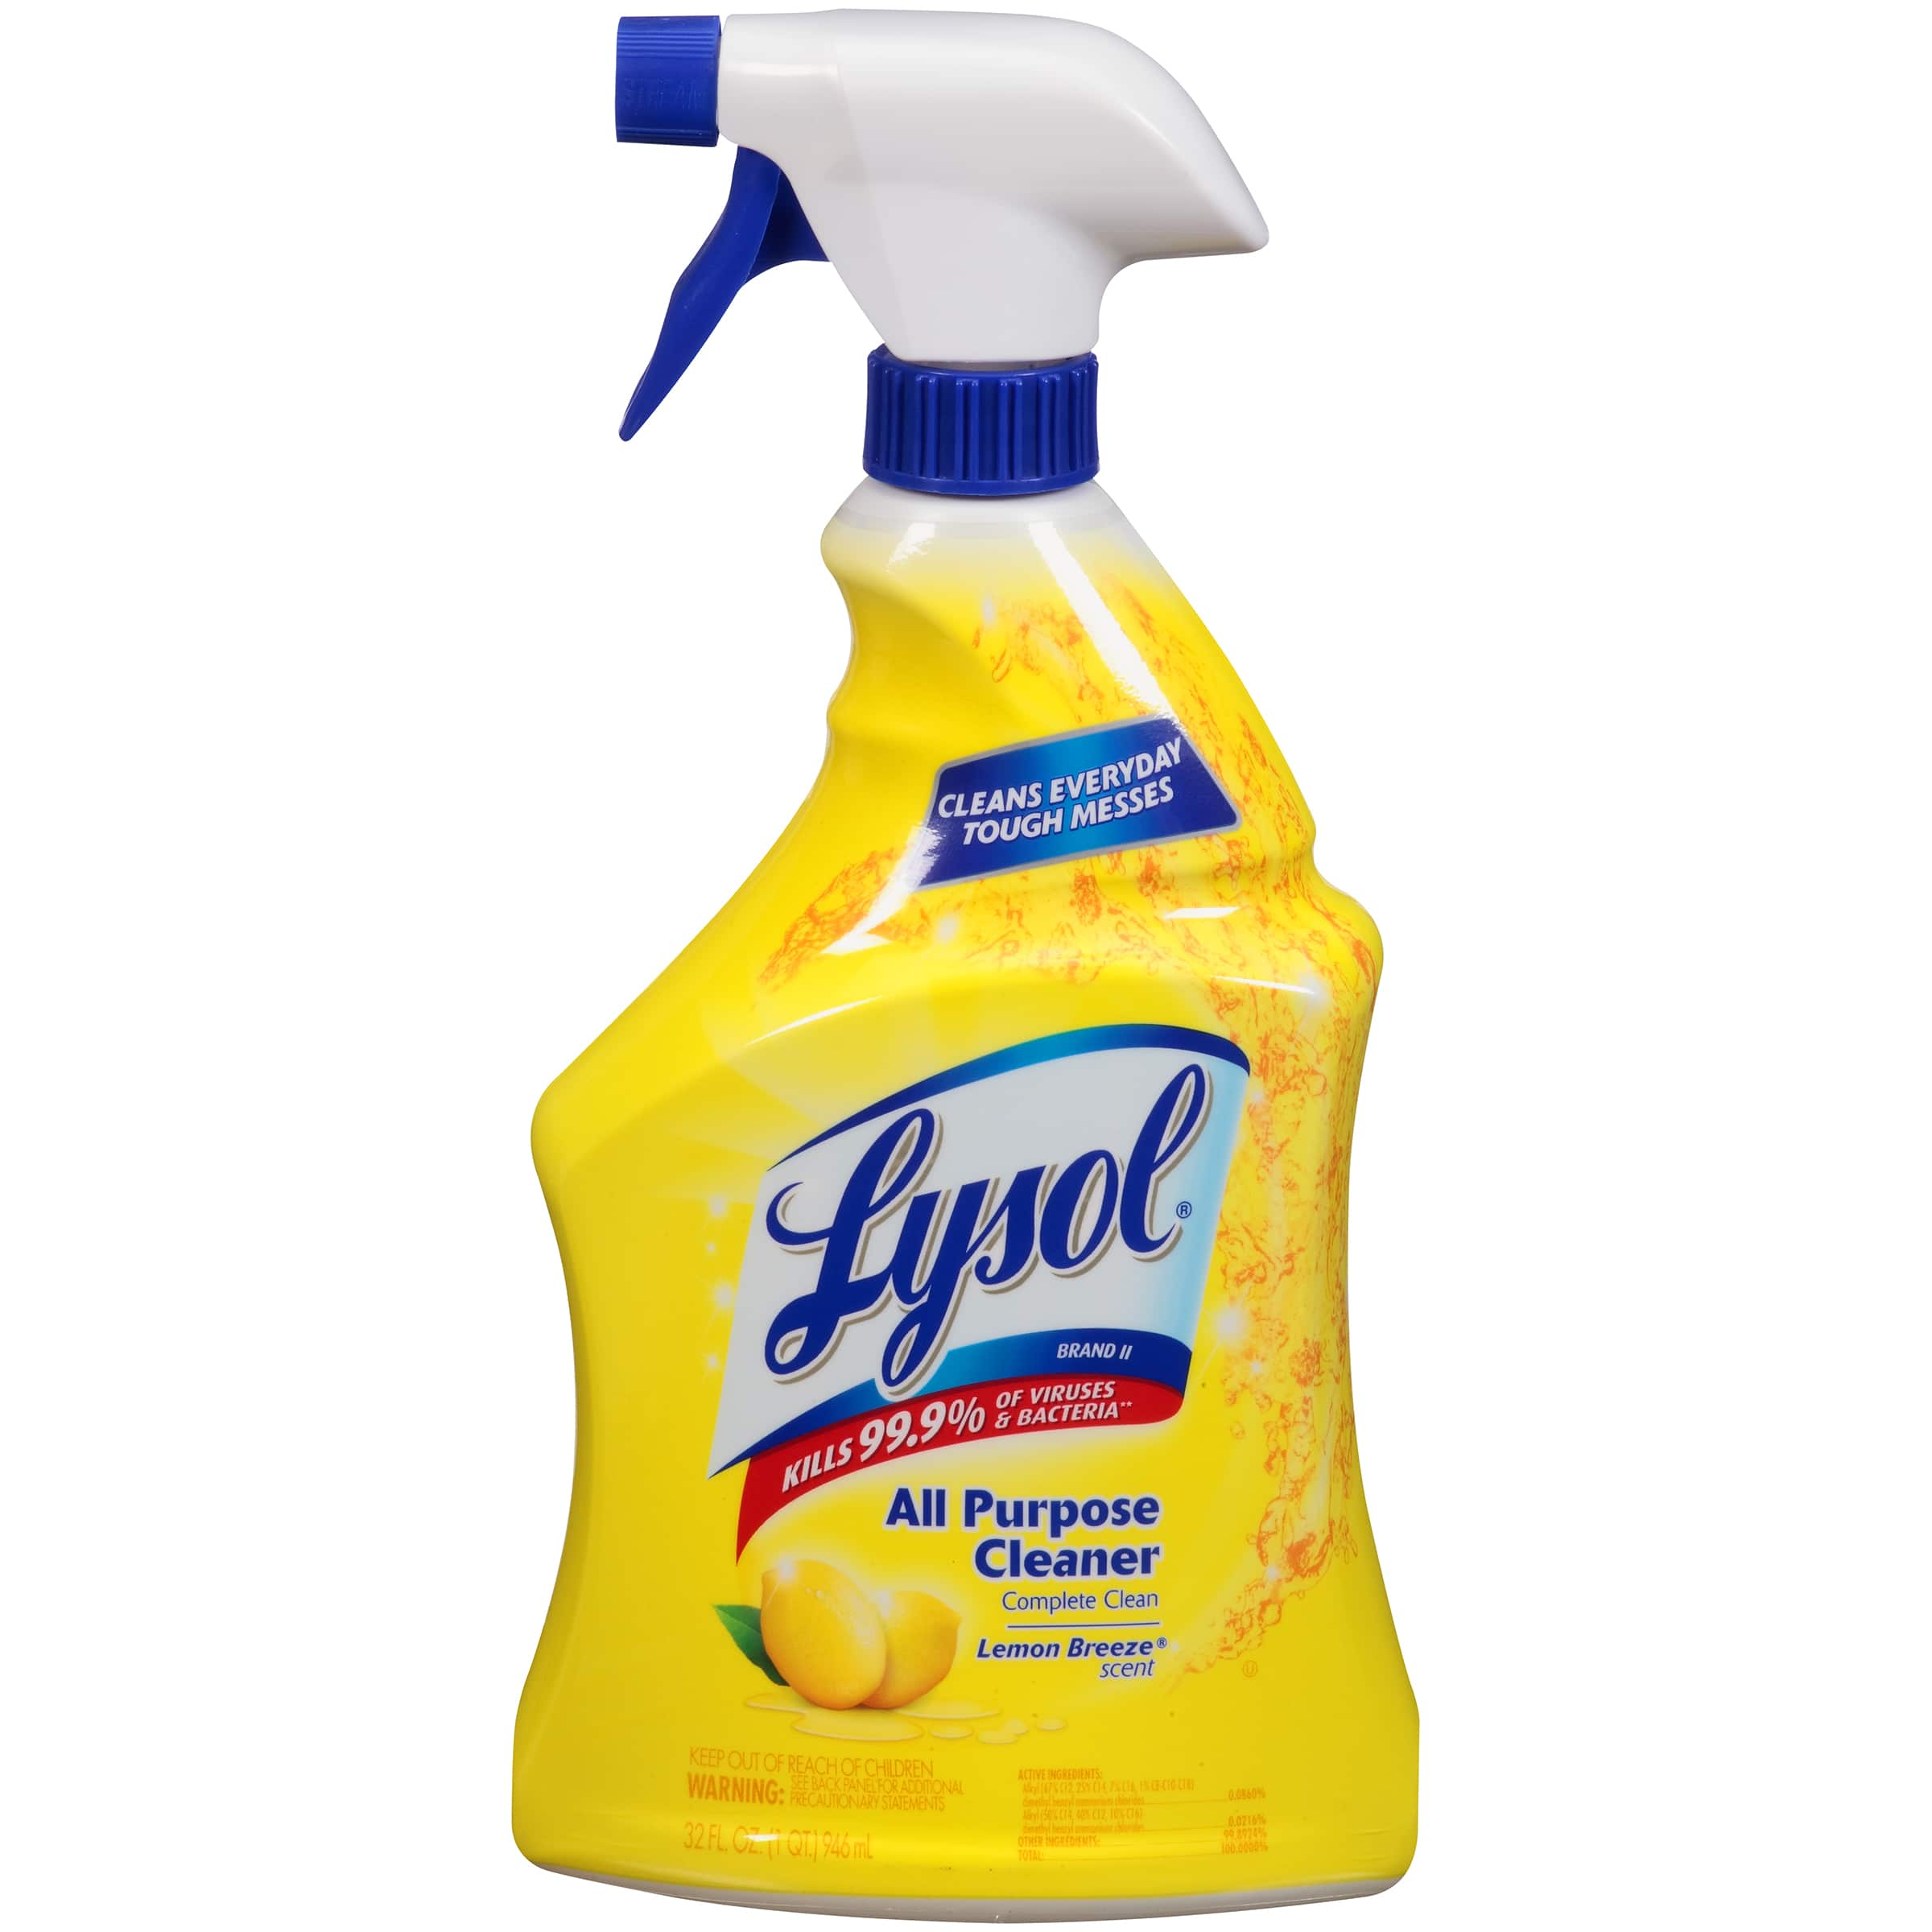 Target.com - 4x Lysol All Purpose Lemon Breeze Cleaner - 32 oz for $5.97 w/ Free In-Store Pickup